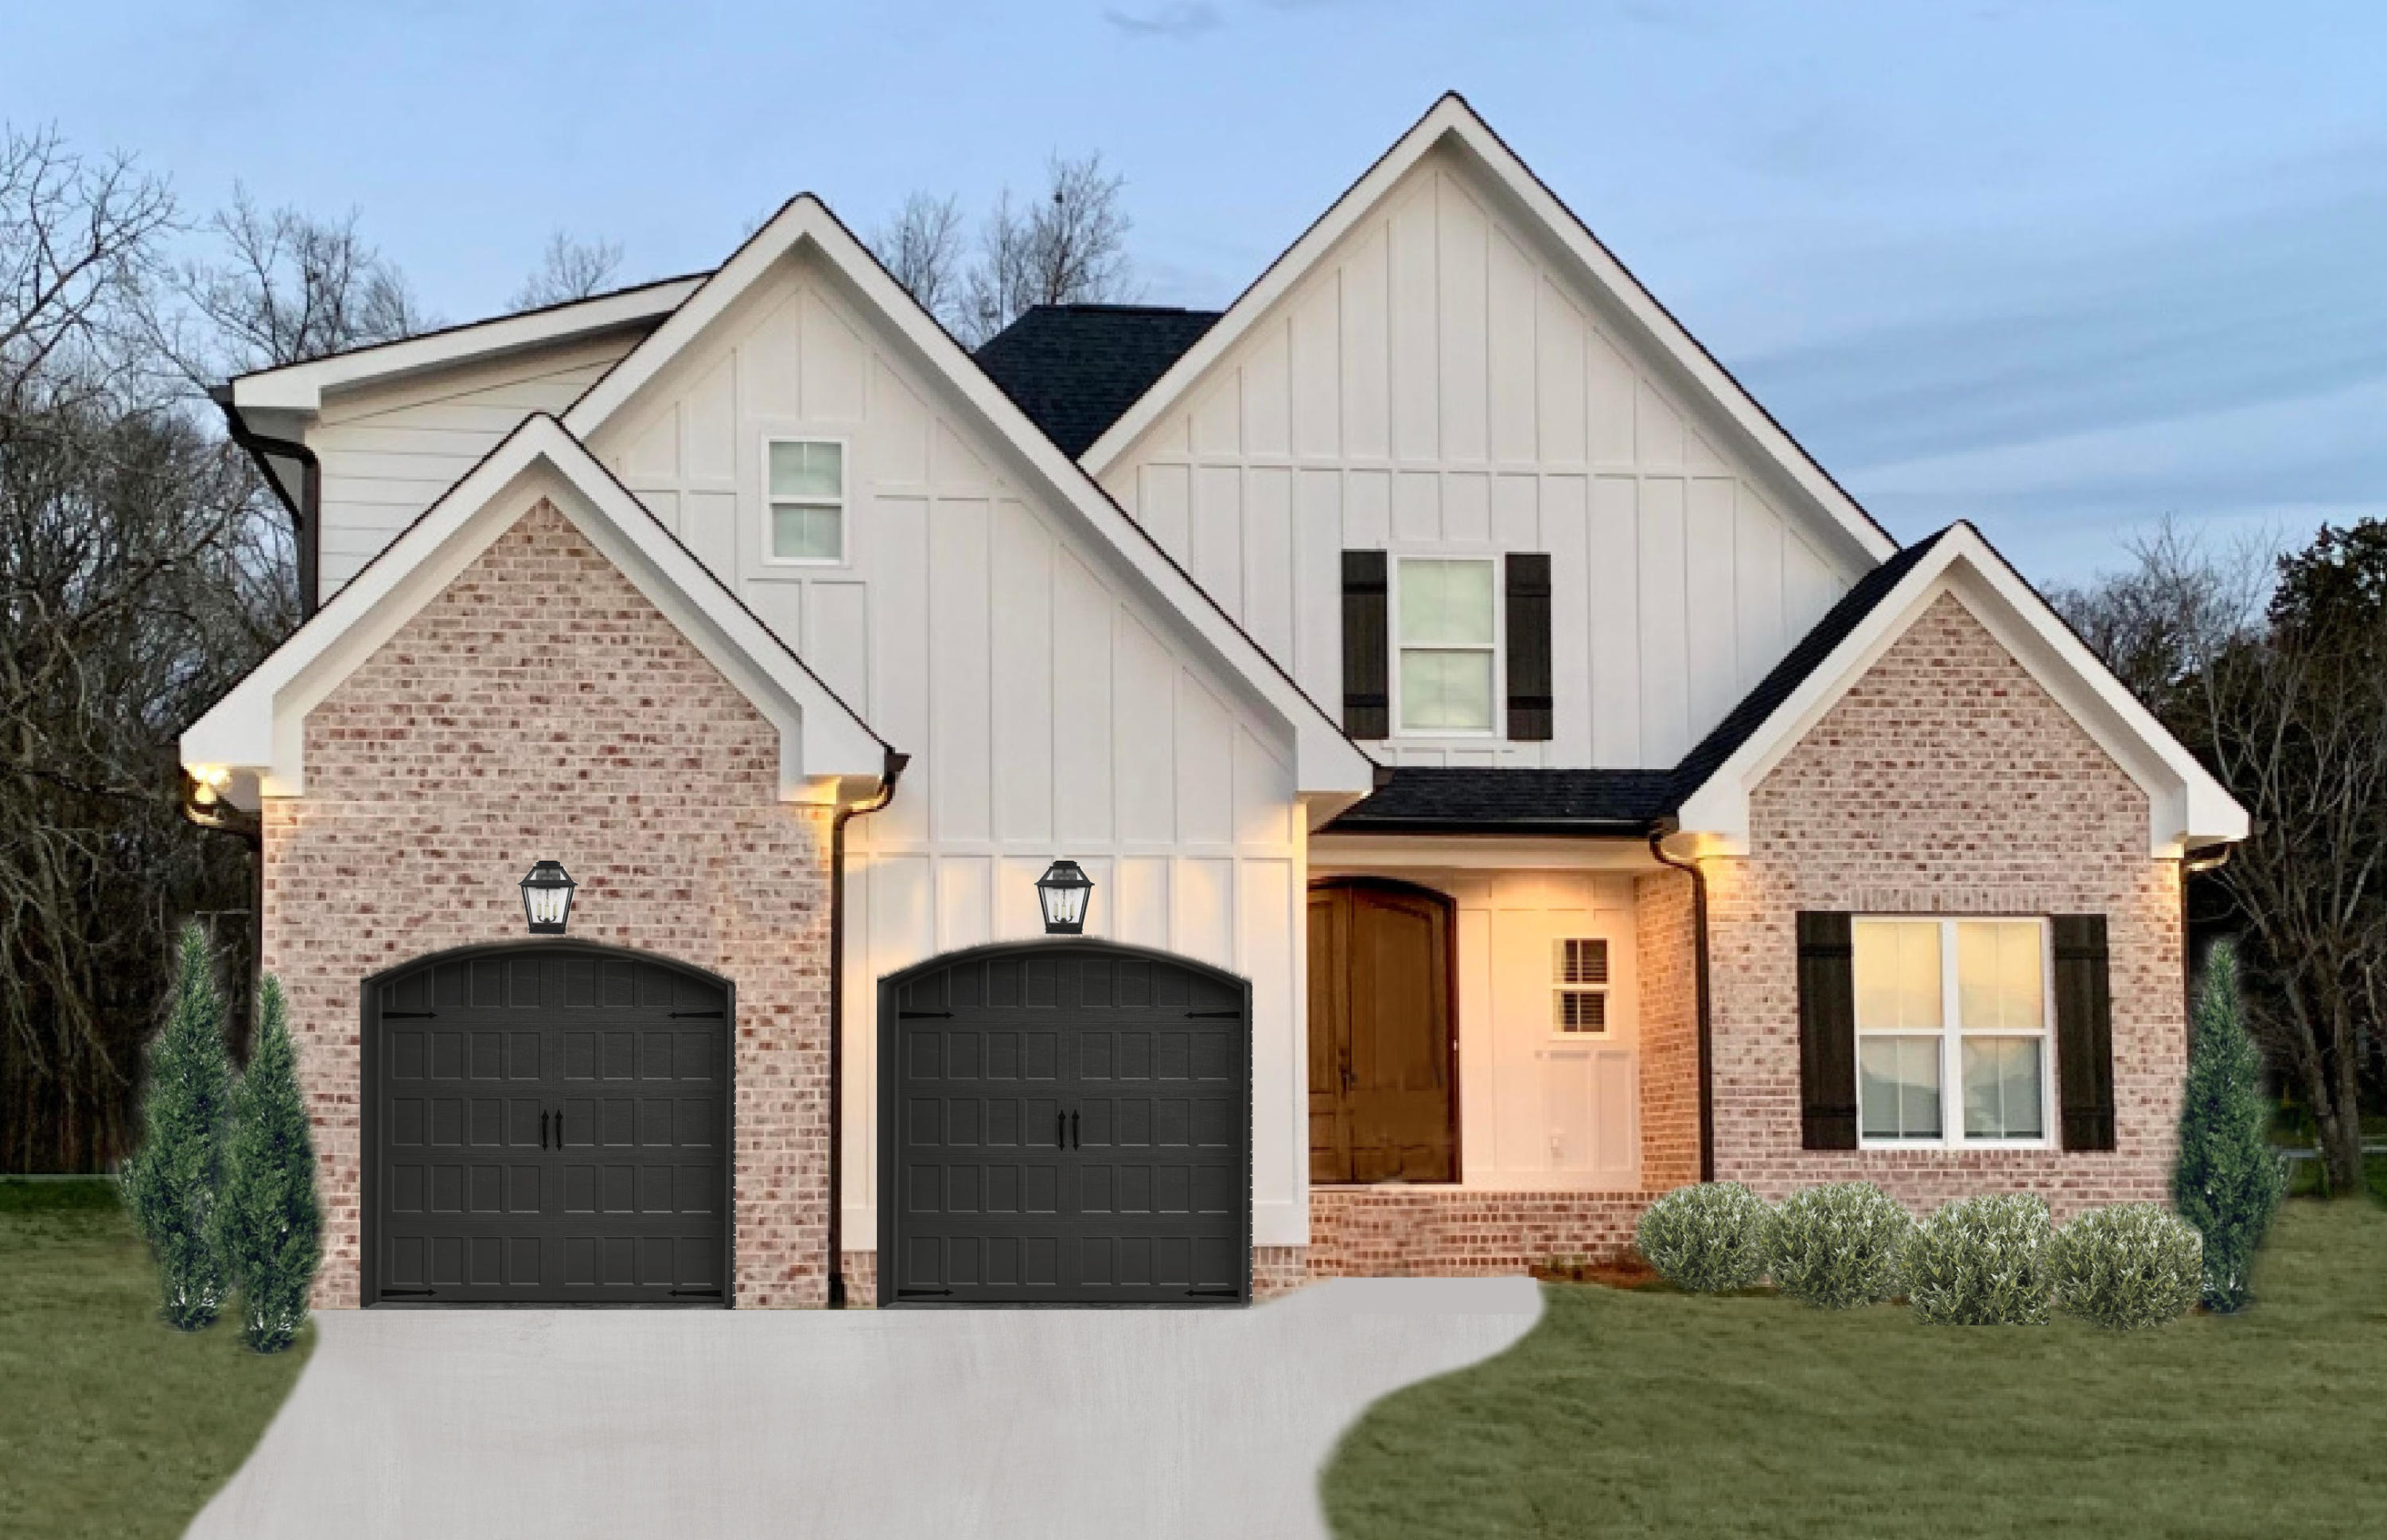 Details for 4149 Barnsley, Ooltewah, TN 37363